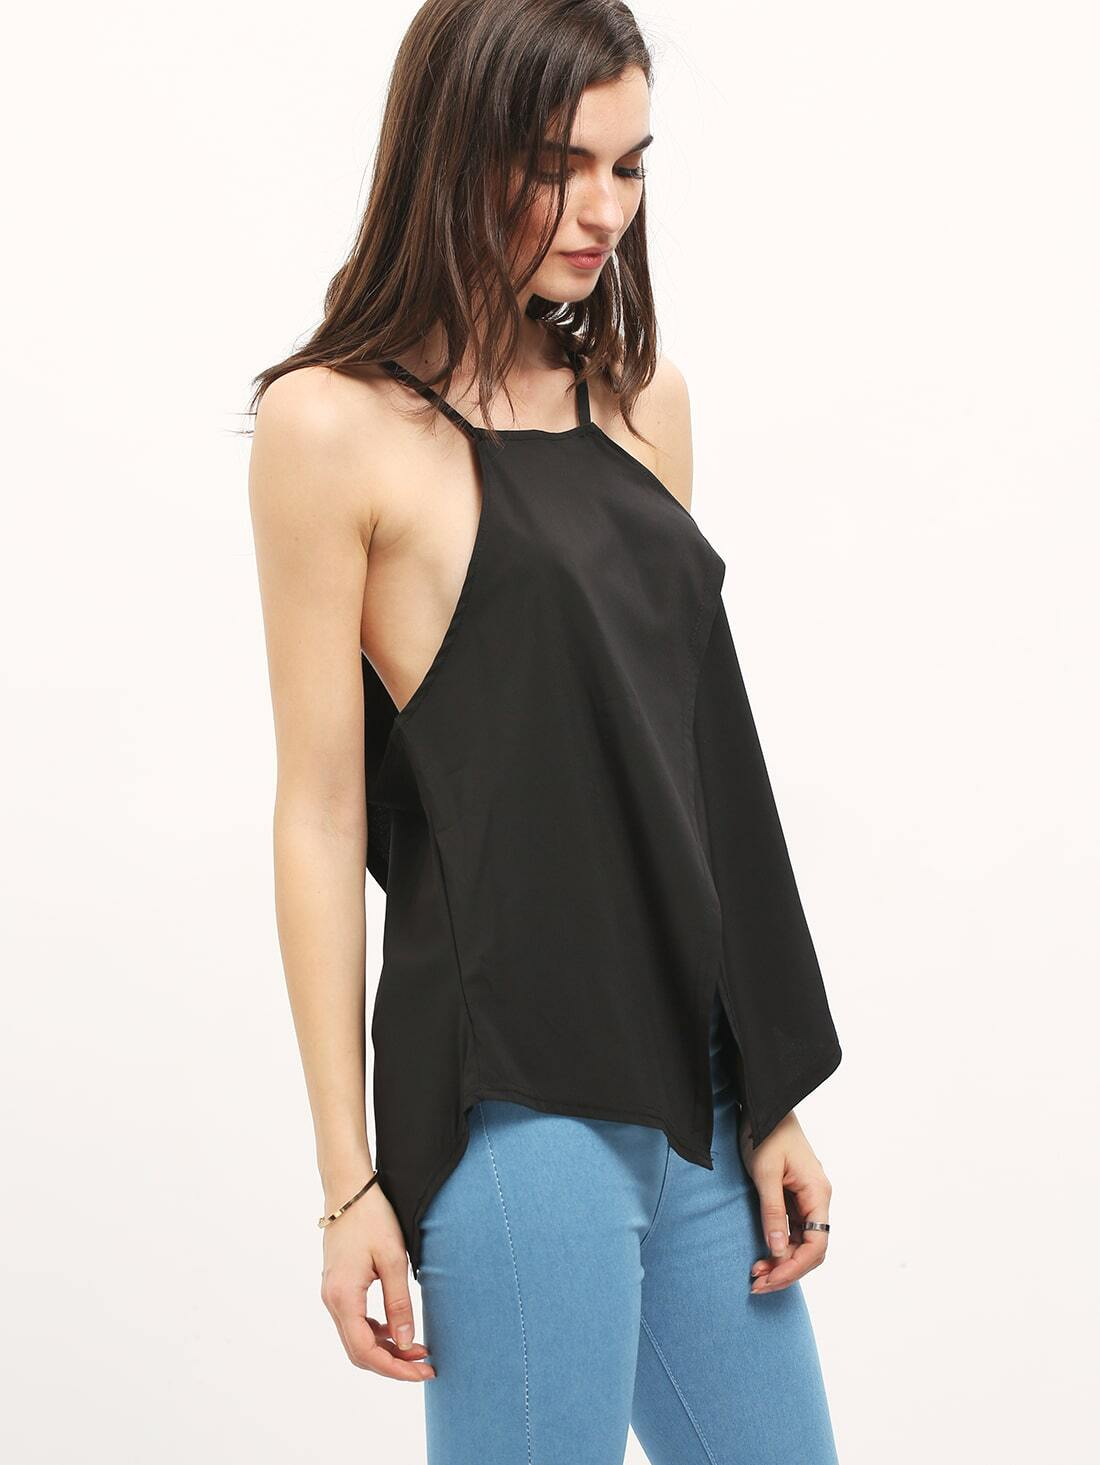 Under a favorite hoodie or with a cardigan, there's always room for a tank. Ours features a long, layerable silhouette with adjustable straps and a bit of spandex for stretch.